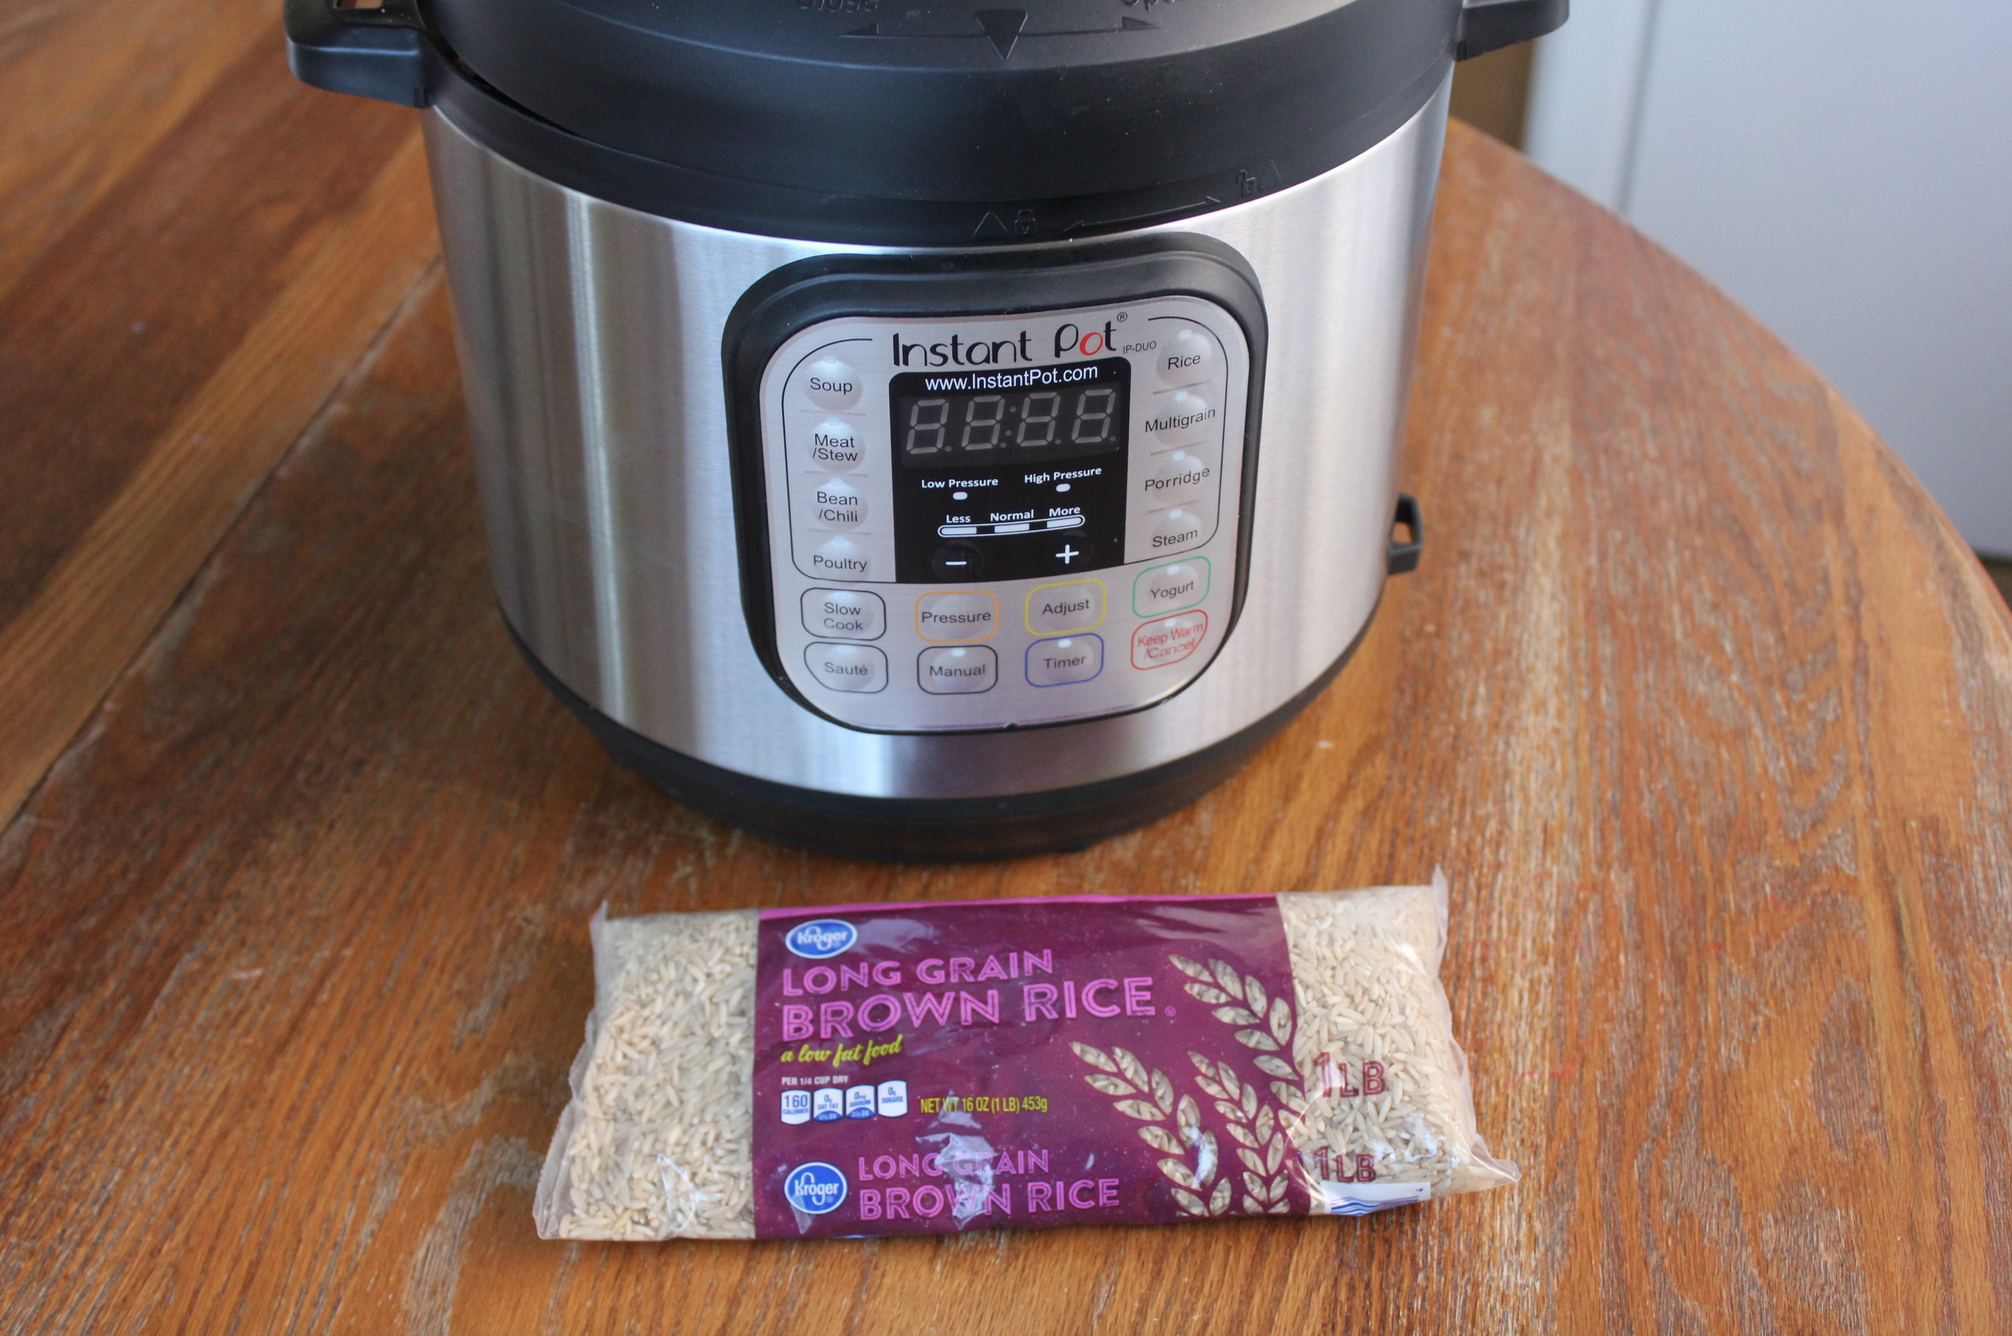 So I Thought It Would Be Fun To Share Some Very Beginning Instant Pot  Recipes On My Blog Over The Next Few Months As I Learn How To Use My  Instant Pot